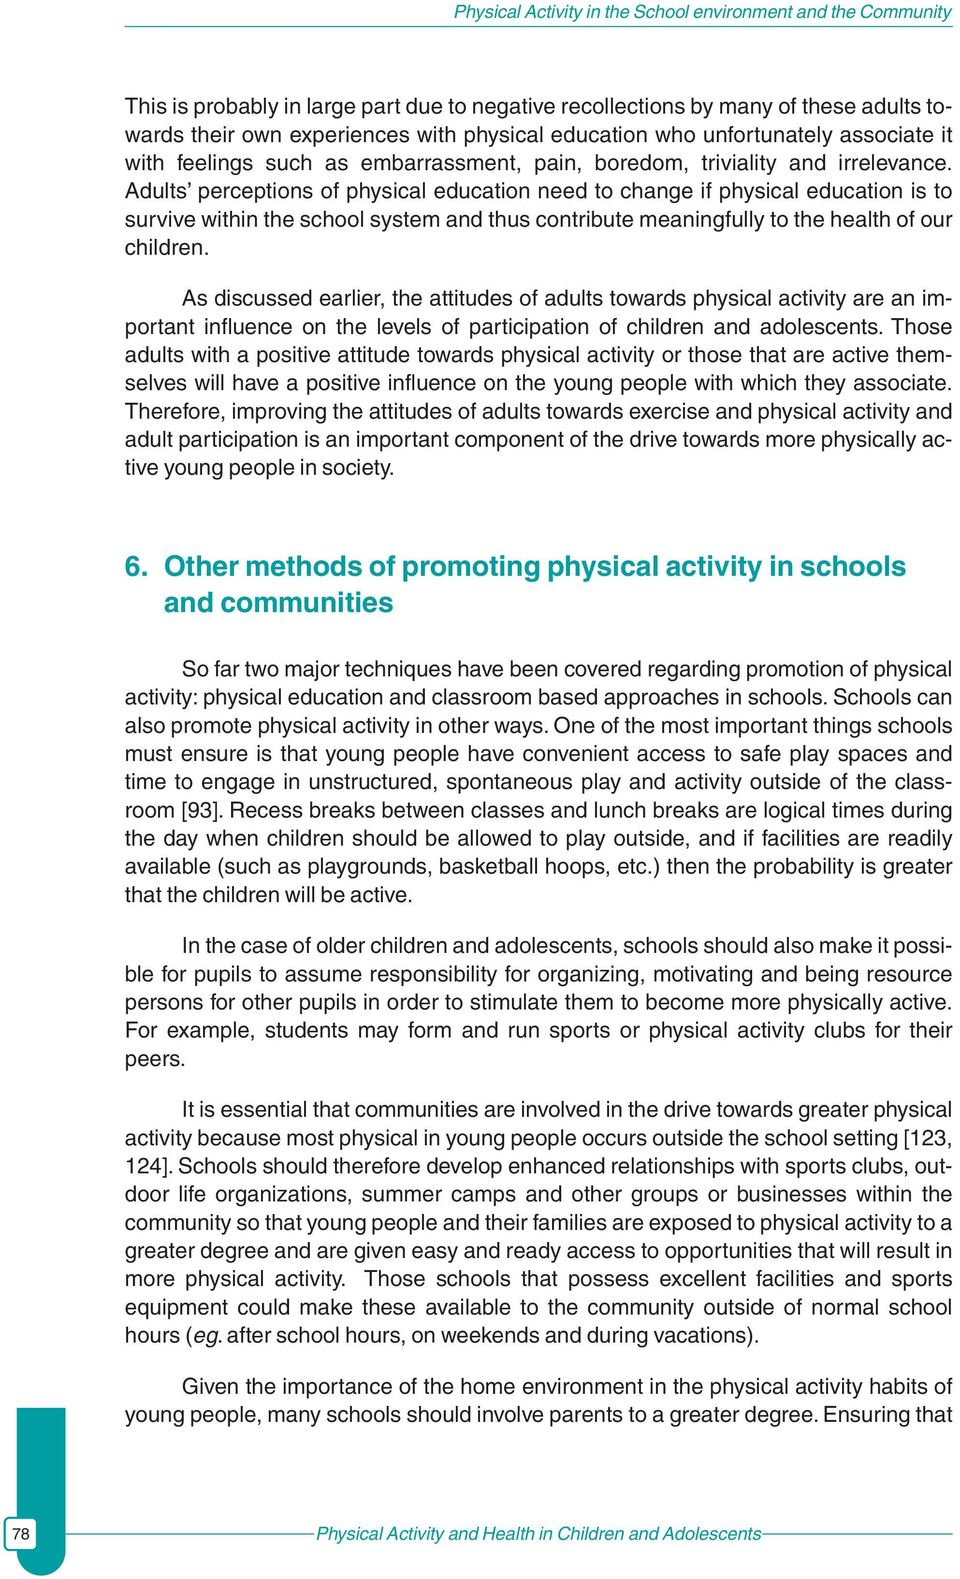 Adults perceptions of physical education need to change if physical education is to survive within the school system and thus contribute meaningfully to the health of our children.